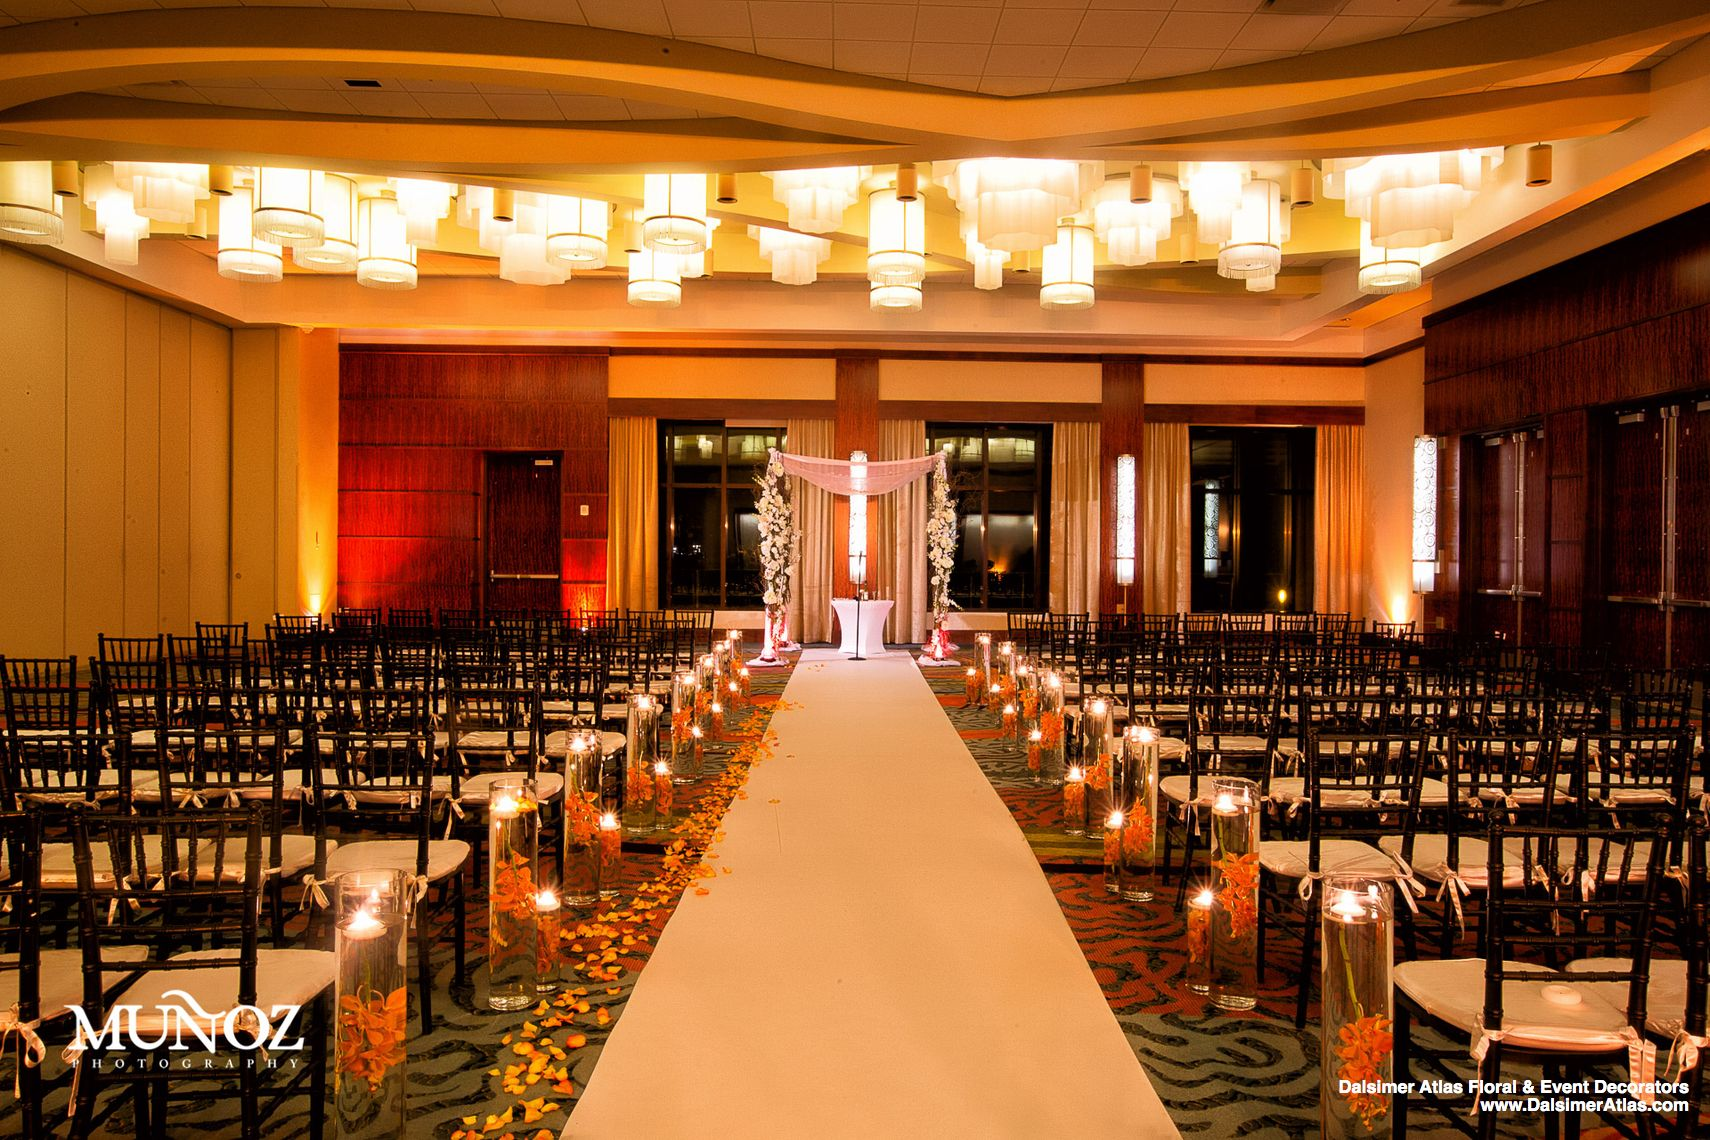 wedding-florist-flowers-decorations-wedding-marriott-harbor-beach-fort-lauderdale-florida-dalsimer-atlas-9